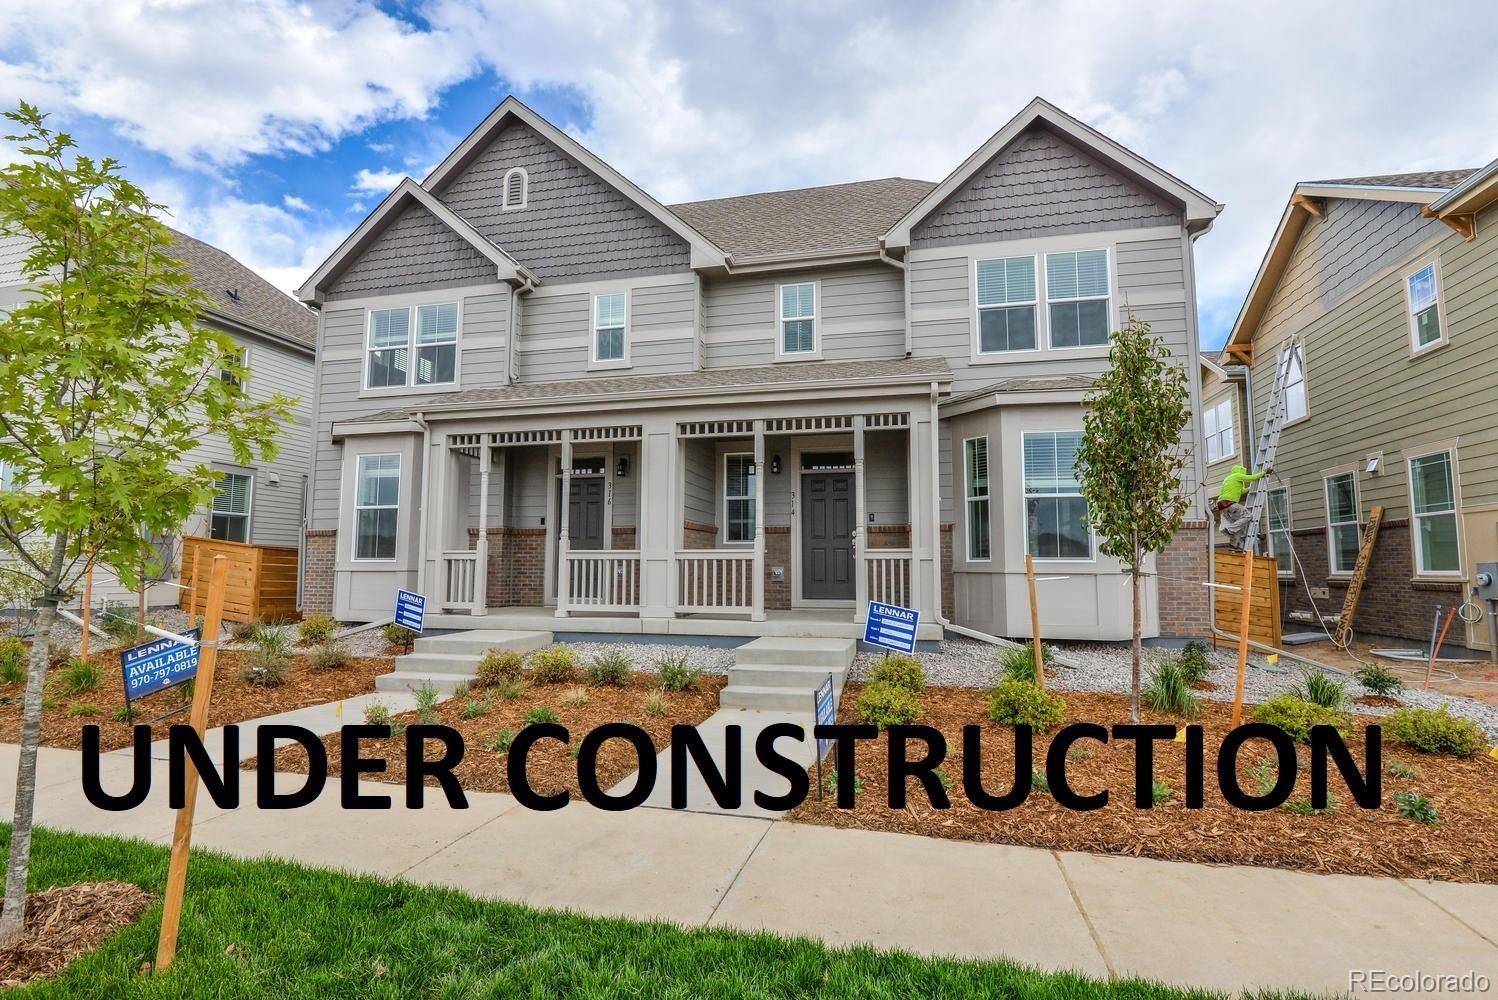 MLS# 8467146 - 1 - 304 Vicot Way, Fort Collins, CO 80524